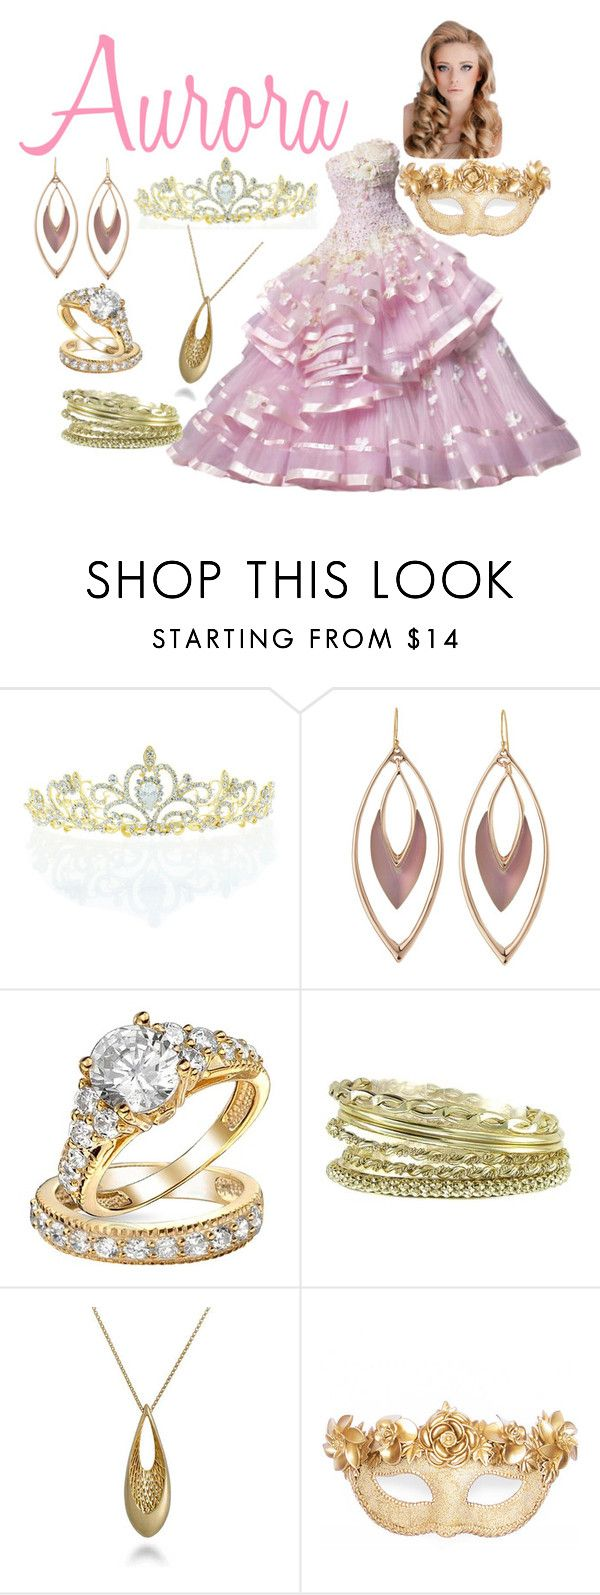 """""""Aurora// Masquerade Ball"""" by not-a-muggle ❤ liked on Polyvore featuring мода, Kate Marie, Alexis Bittar, Bling Jewelry, Erica Lyons, Roberto Coin и Masquerade"""